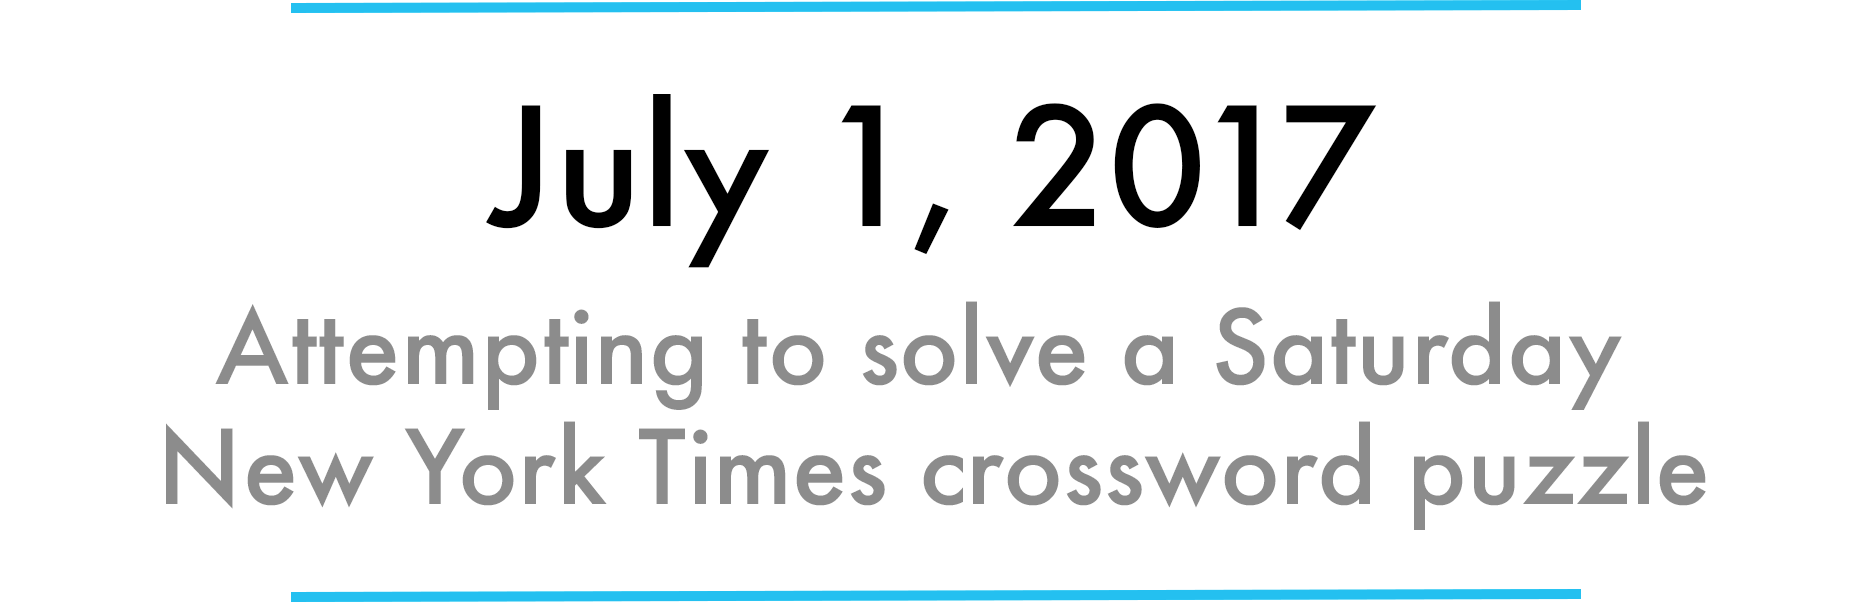 dating advice for men when to call crossword one time